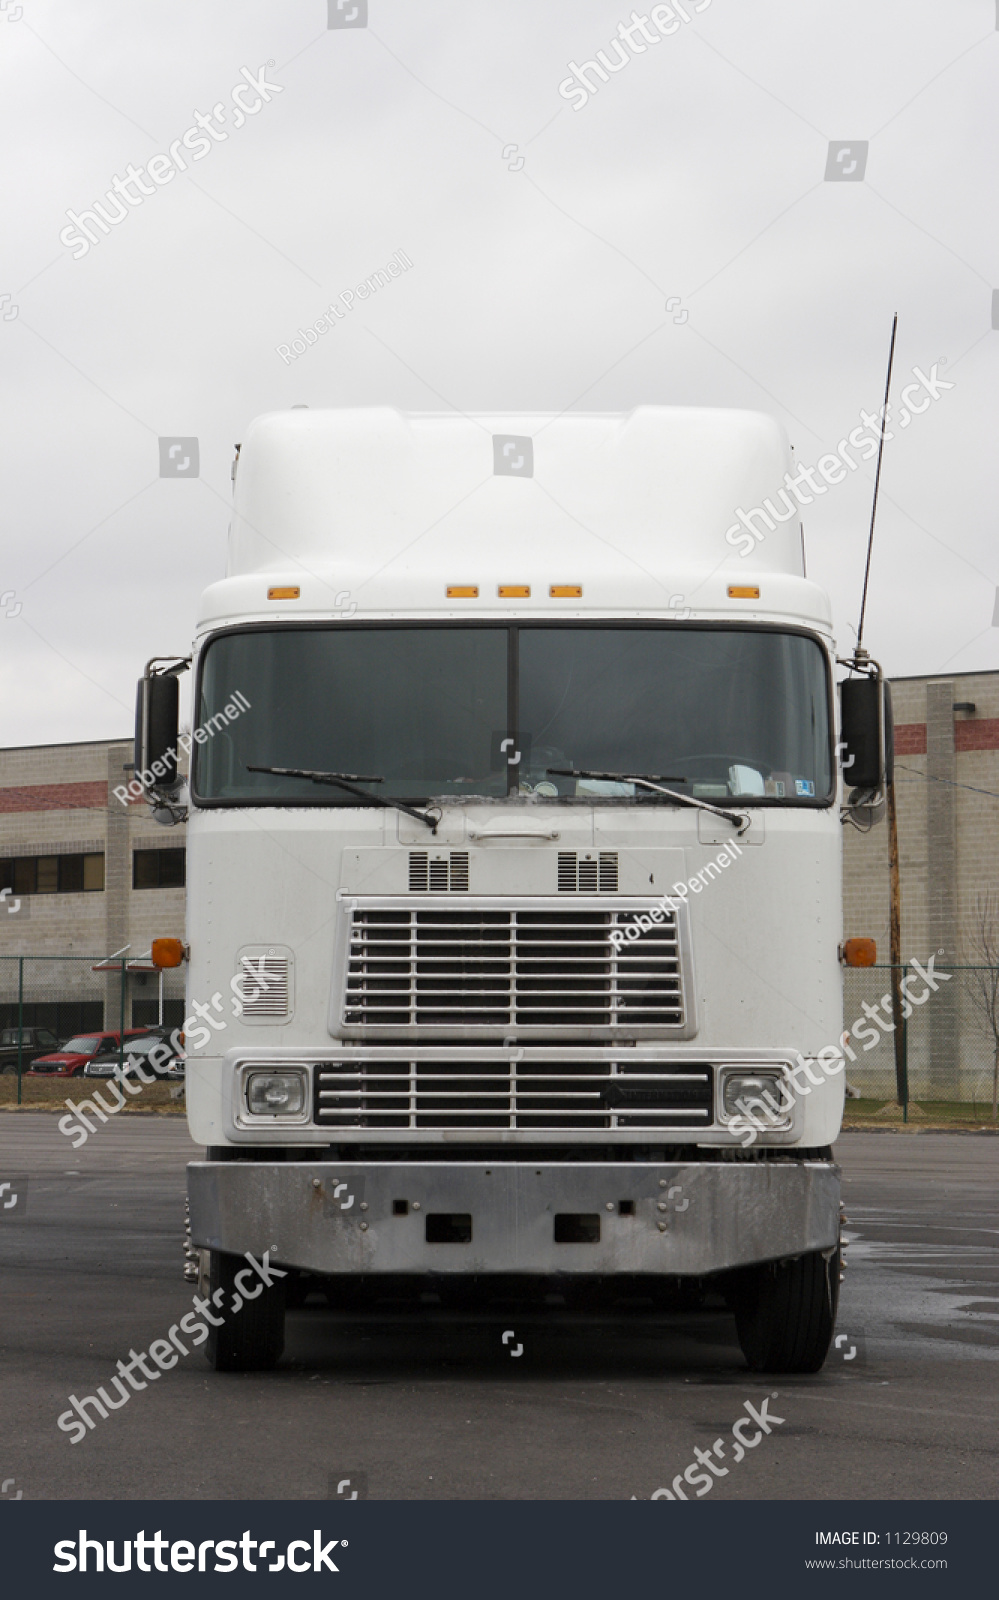 Tractor Trailer Stock : Front view of a semi tractor trailer truck stock photo